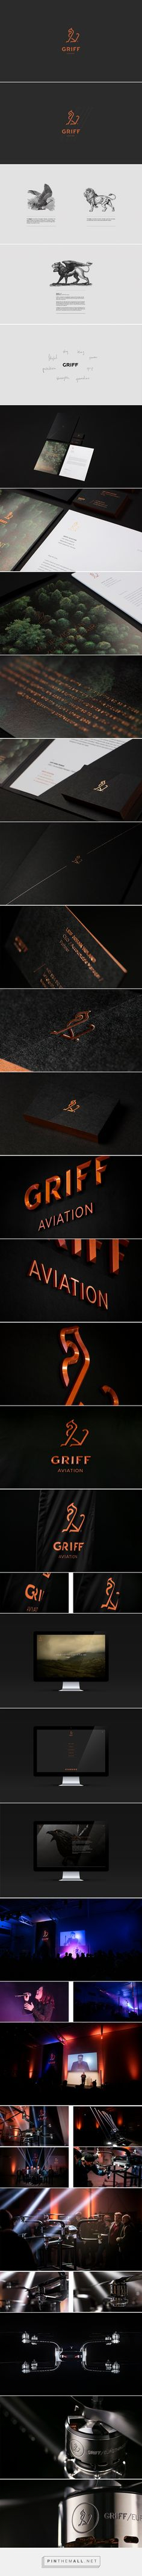 GRIFF AVIATION - Corporate Identity / Branding on Behance